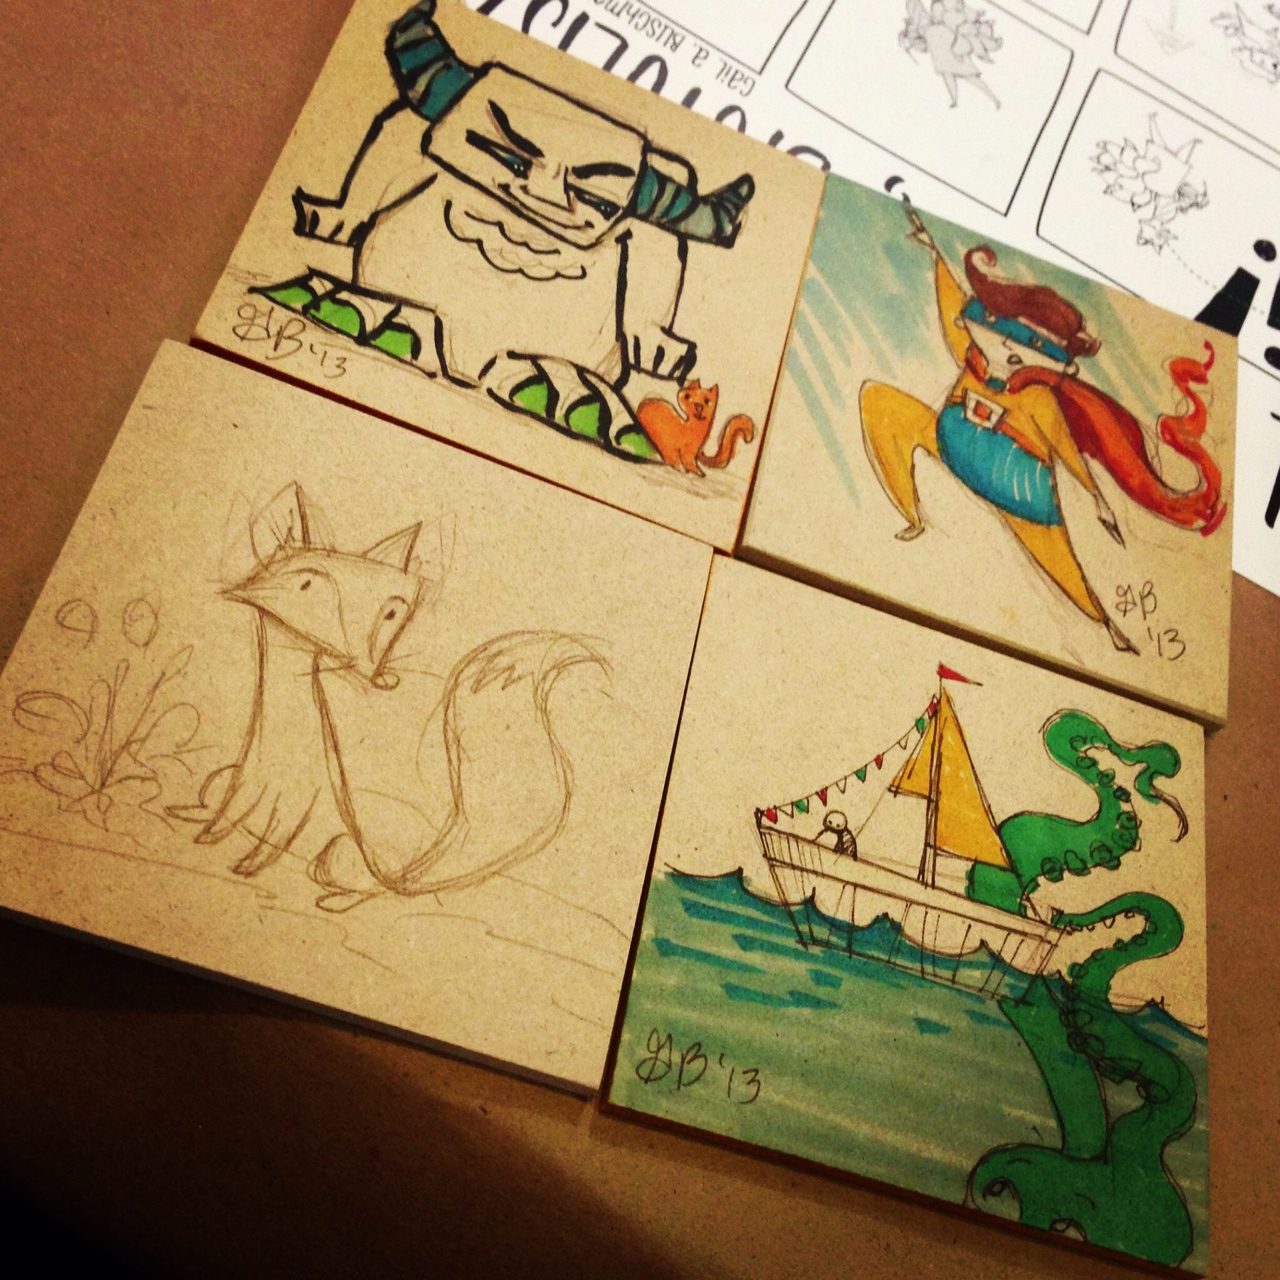 The start of the sketches I worked on throughout the day. Once I started drawing the fox, I got people really excited about my sketches and I drew many more animals. These are all drawn on MDF squares that were very fun to work on.